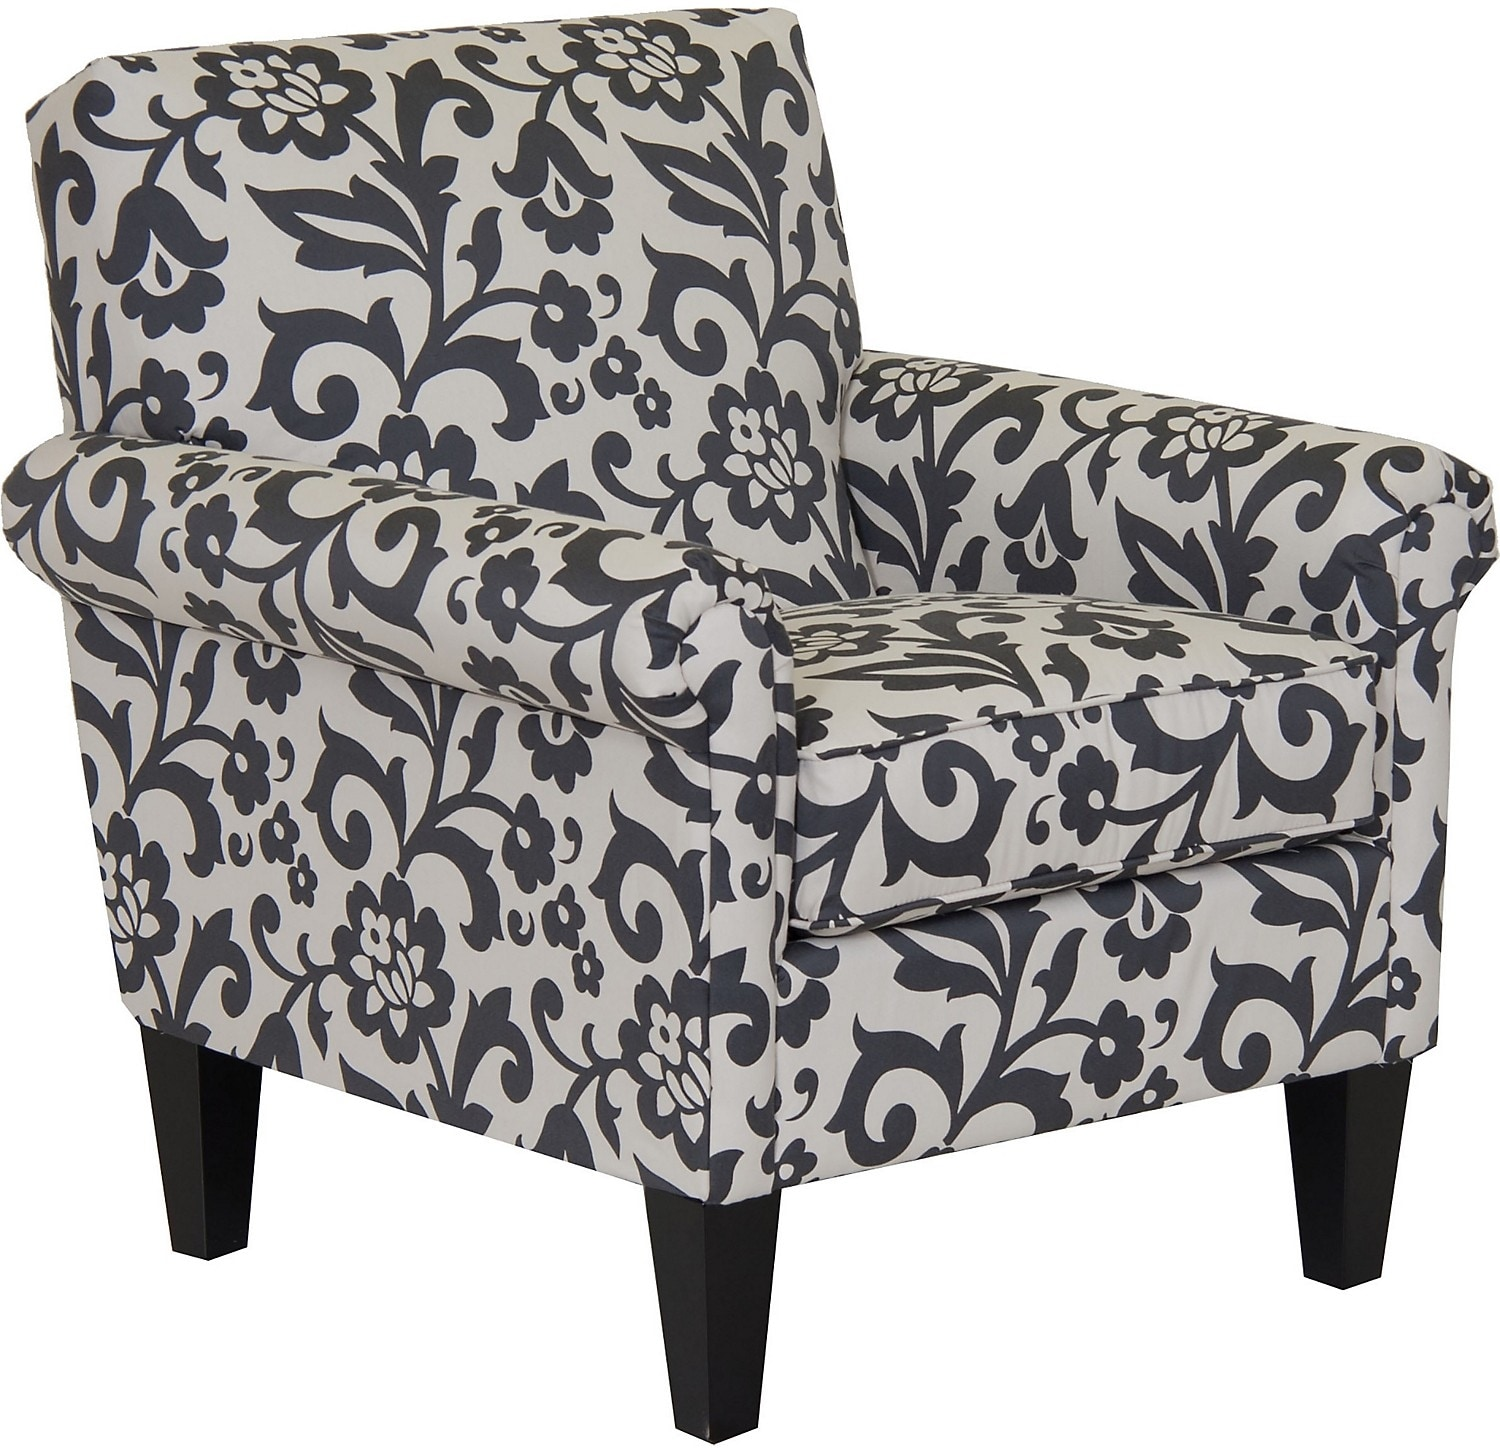 Living Room Furniture - Designed2B Fabric Accent Chair with Rolled Arms - Dove